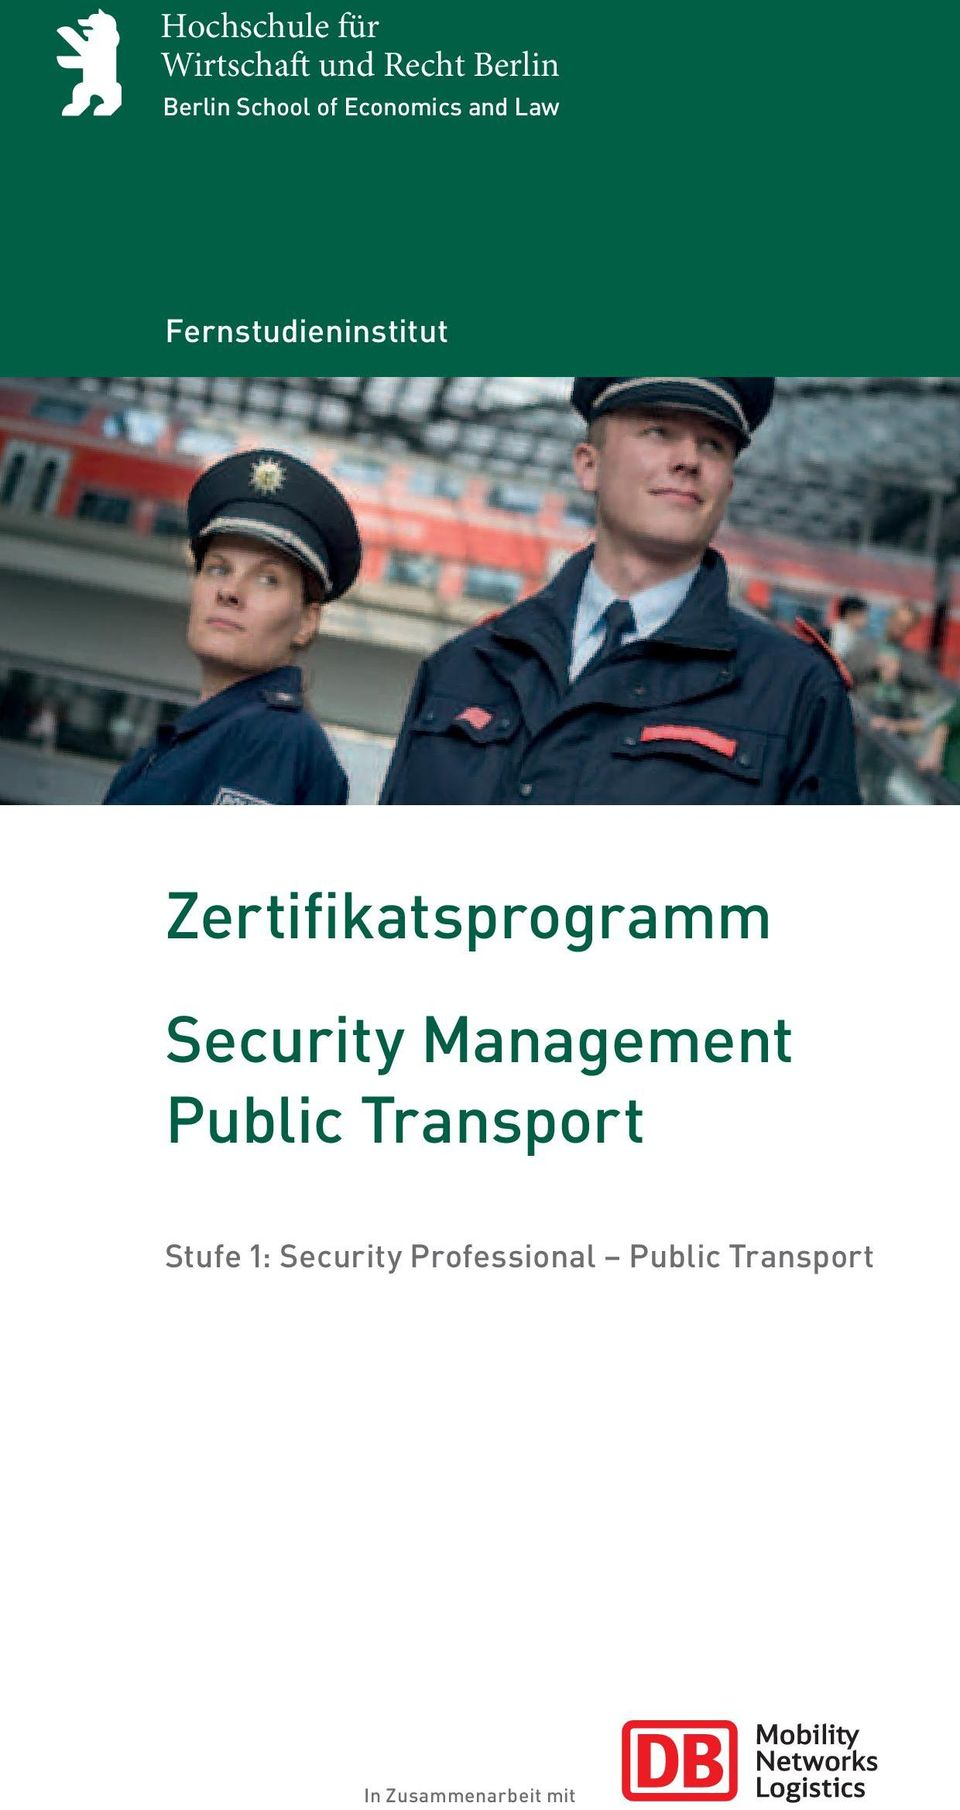 Zertifikatsprogramm Security Management Public